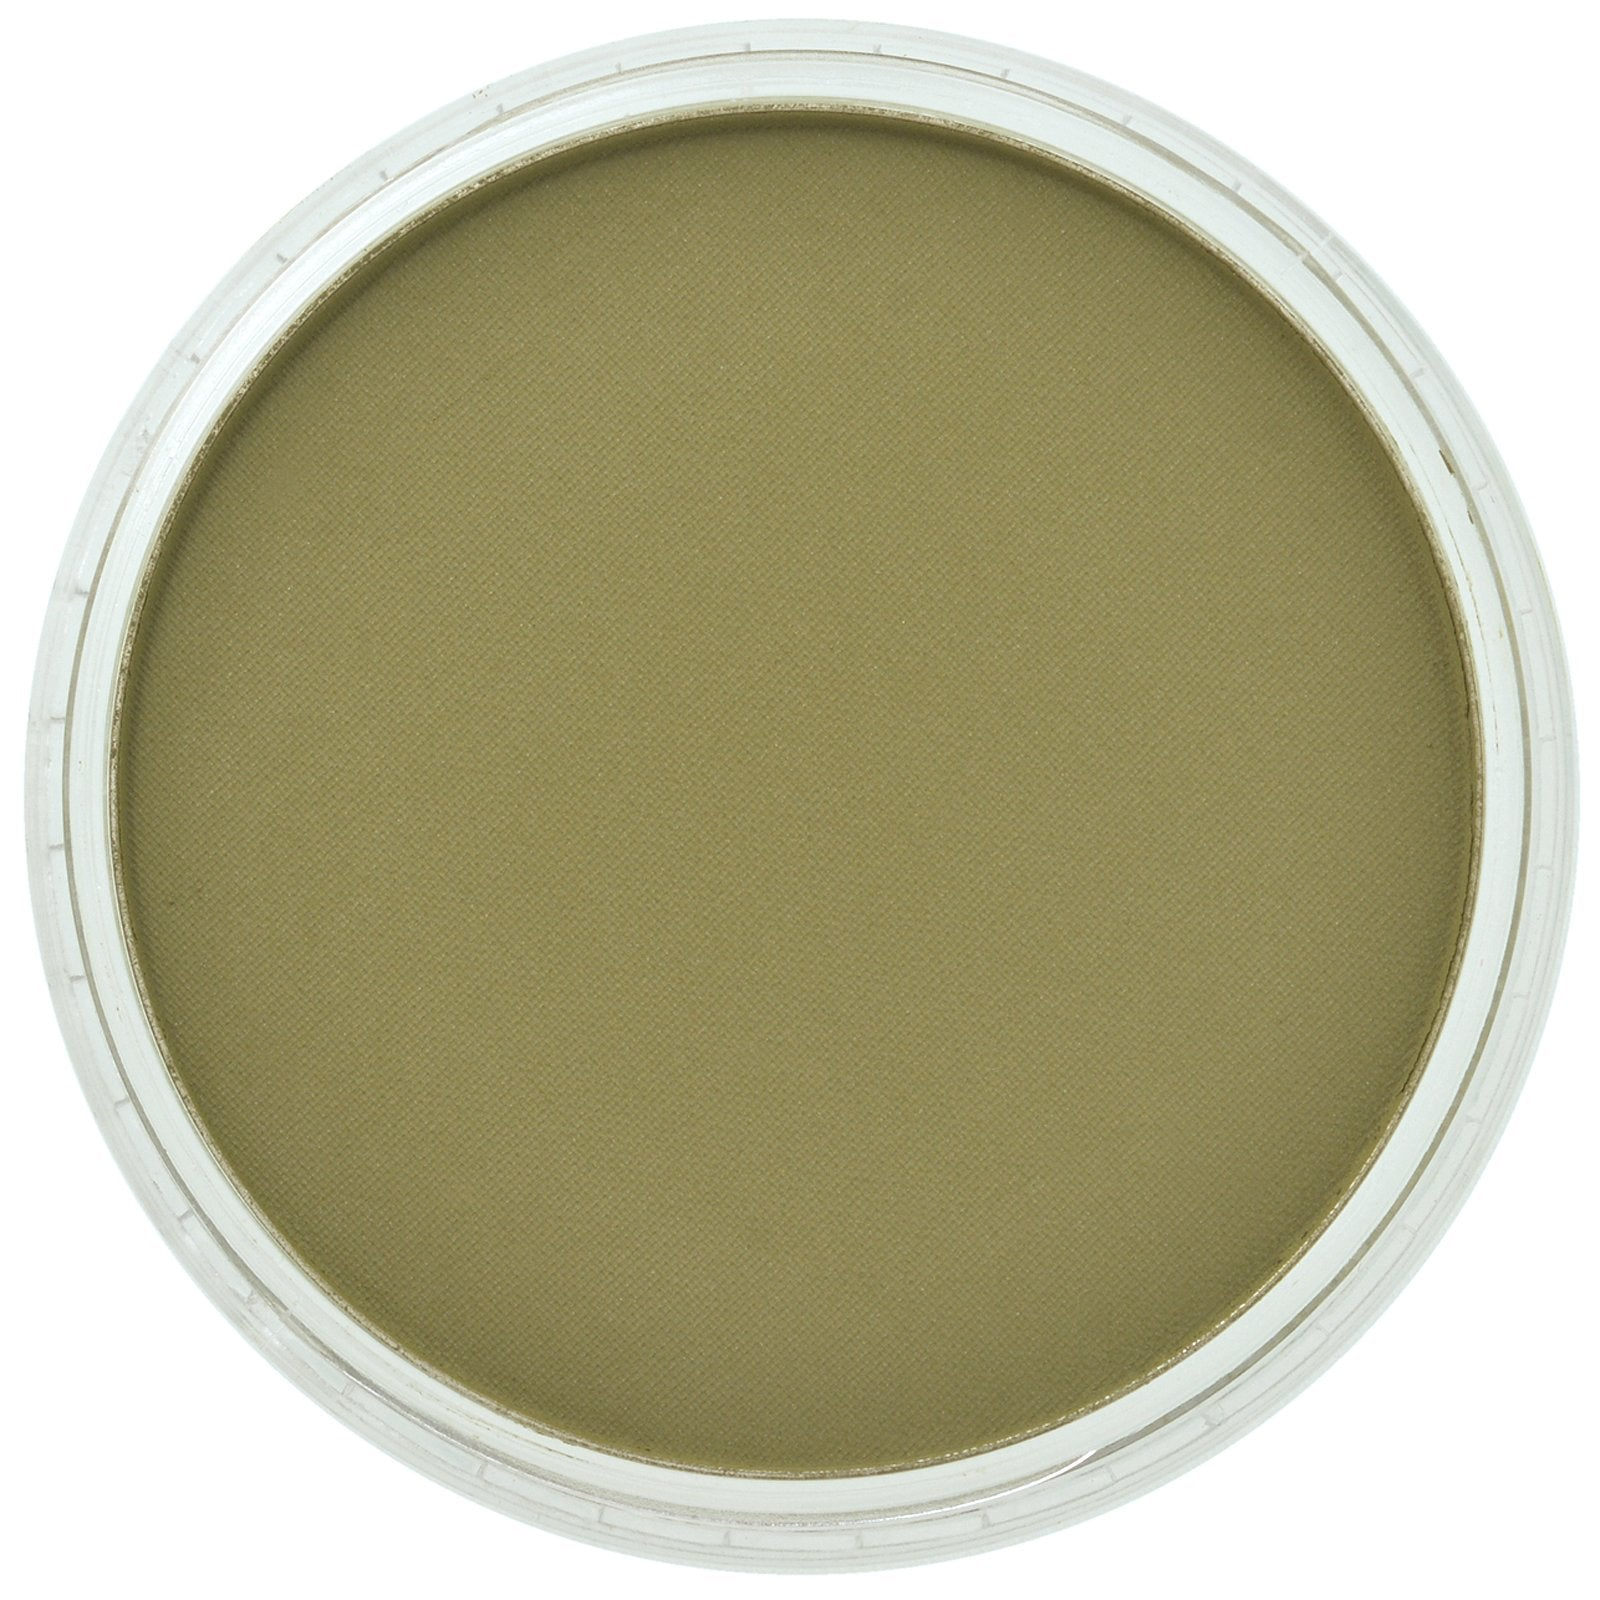 PanPastel - 220.1 HANSA YELLOW EXTRA DARK